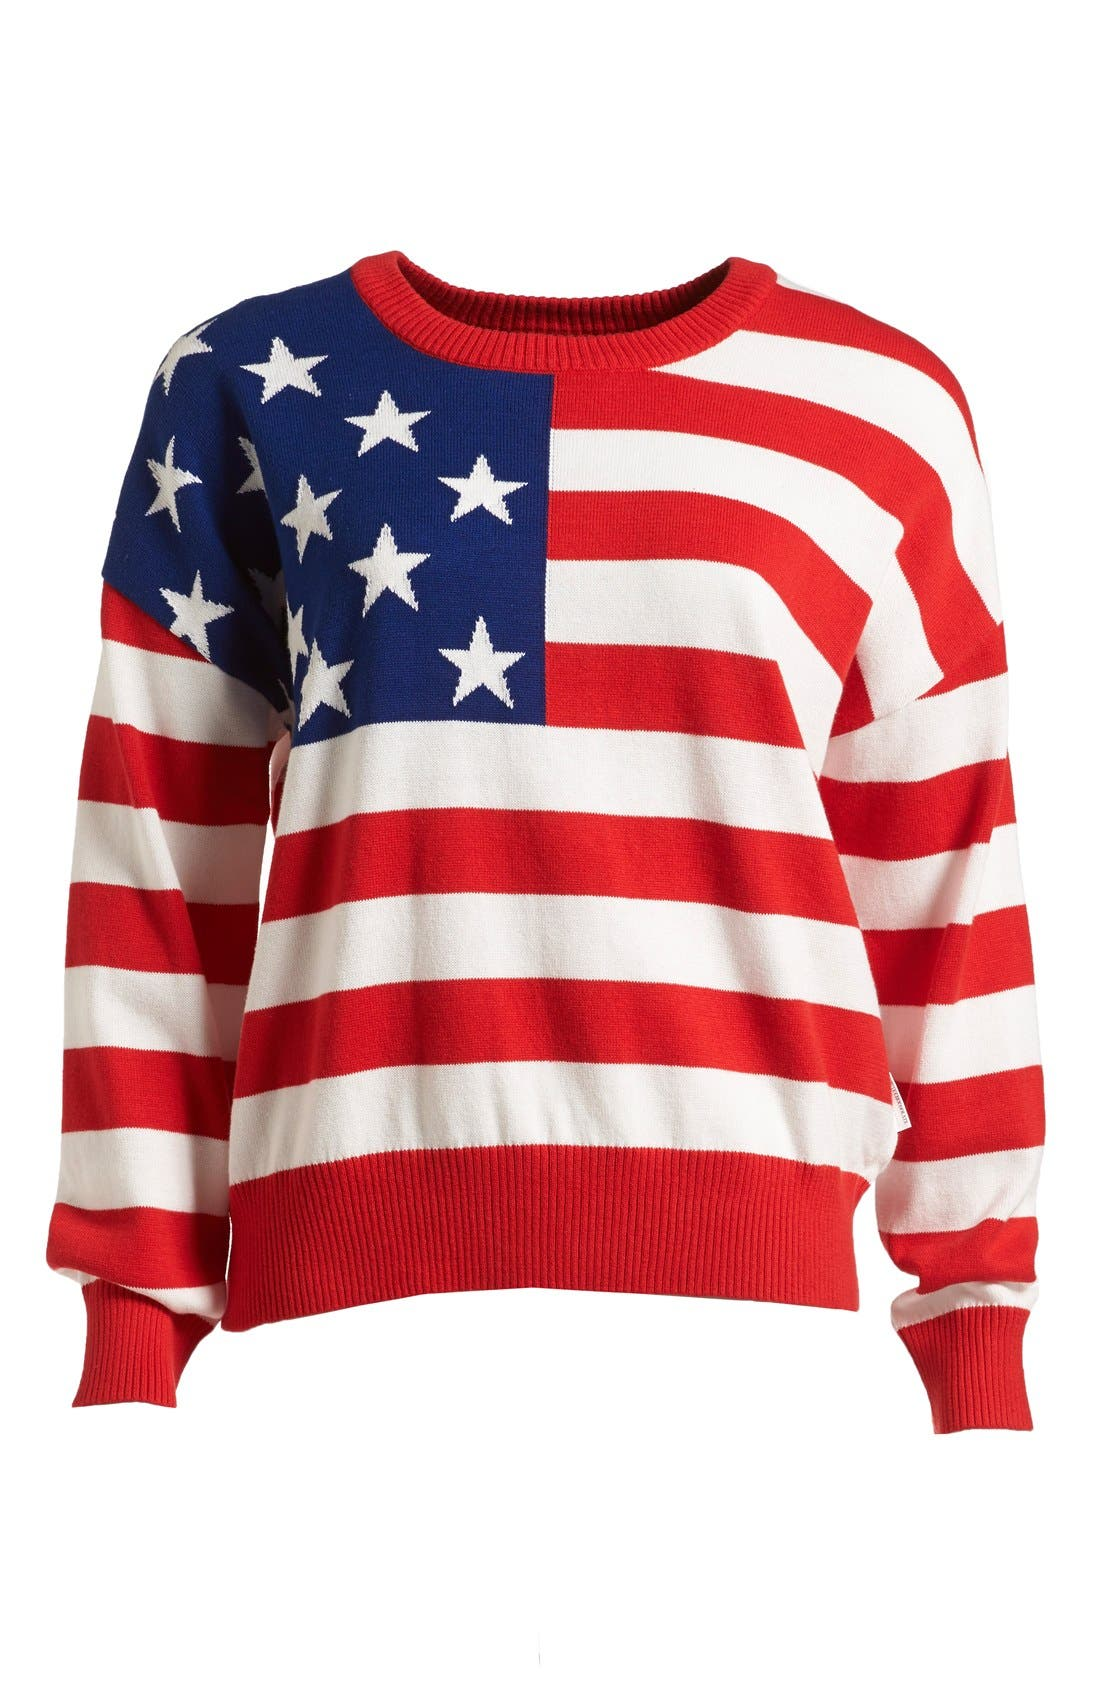 Alternate Image 1 Selected - :CHOCOOLATE US Flag Knit Sweater (Women)